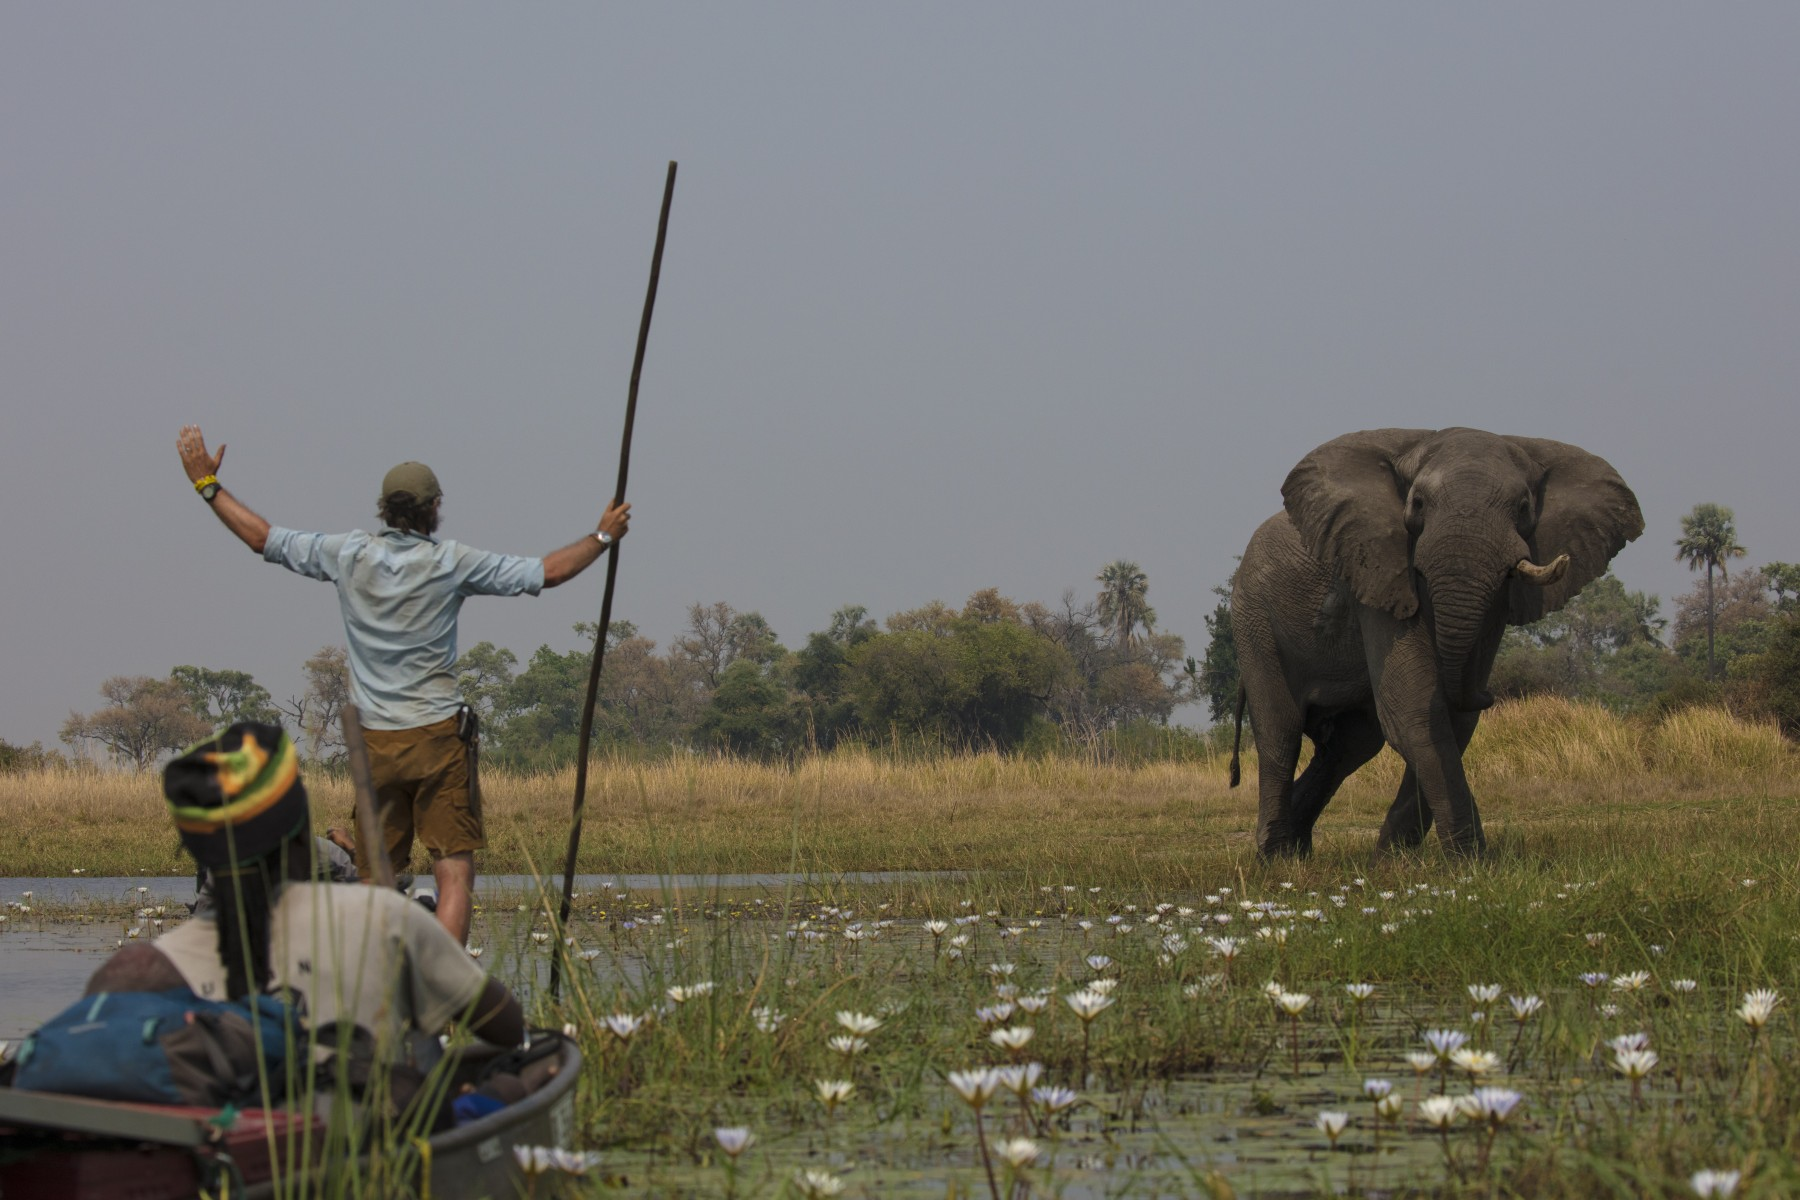 National Geographic Okavango Wilderness Project Leader Steve Boyes interacting with an old bull elephant that did not notice the expedition approaching in the Okavango Delta, Botswana.